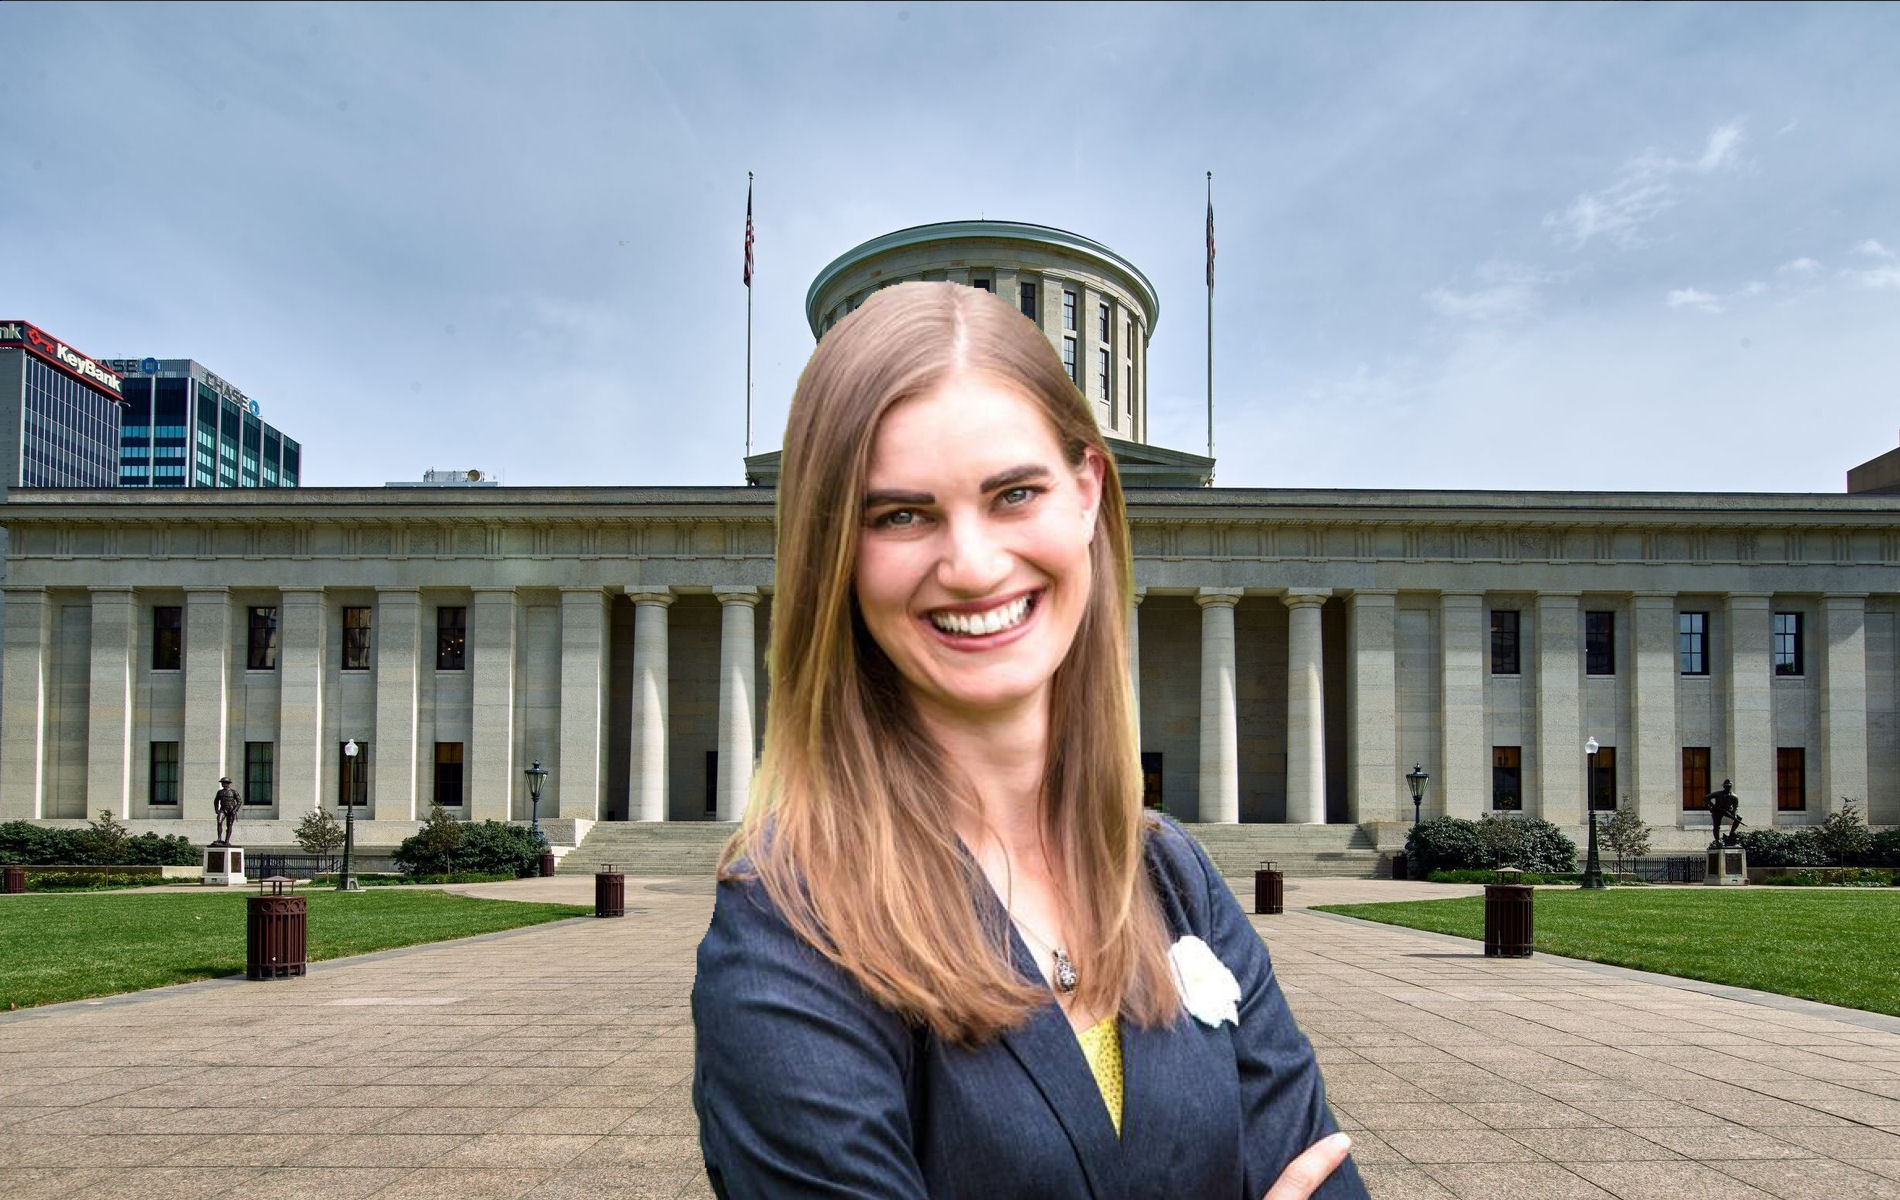 sarah fowler for state representative in ohio 99th district